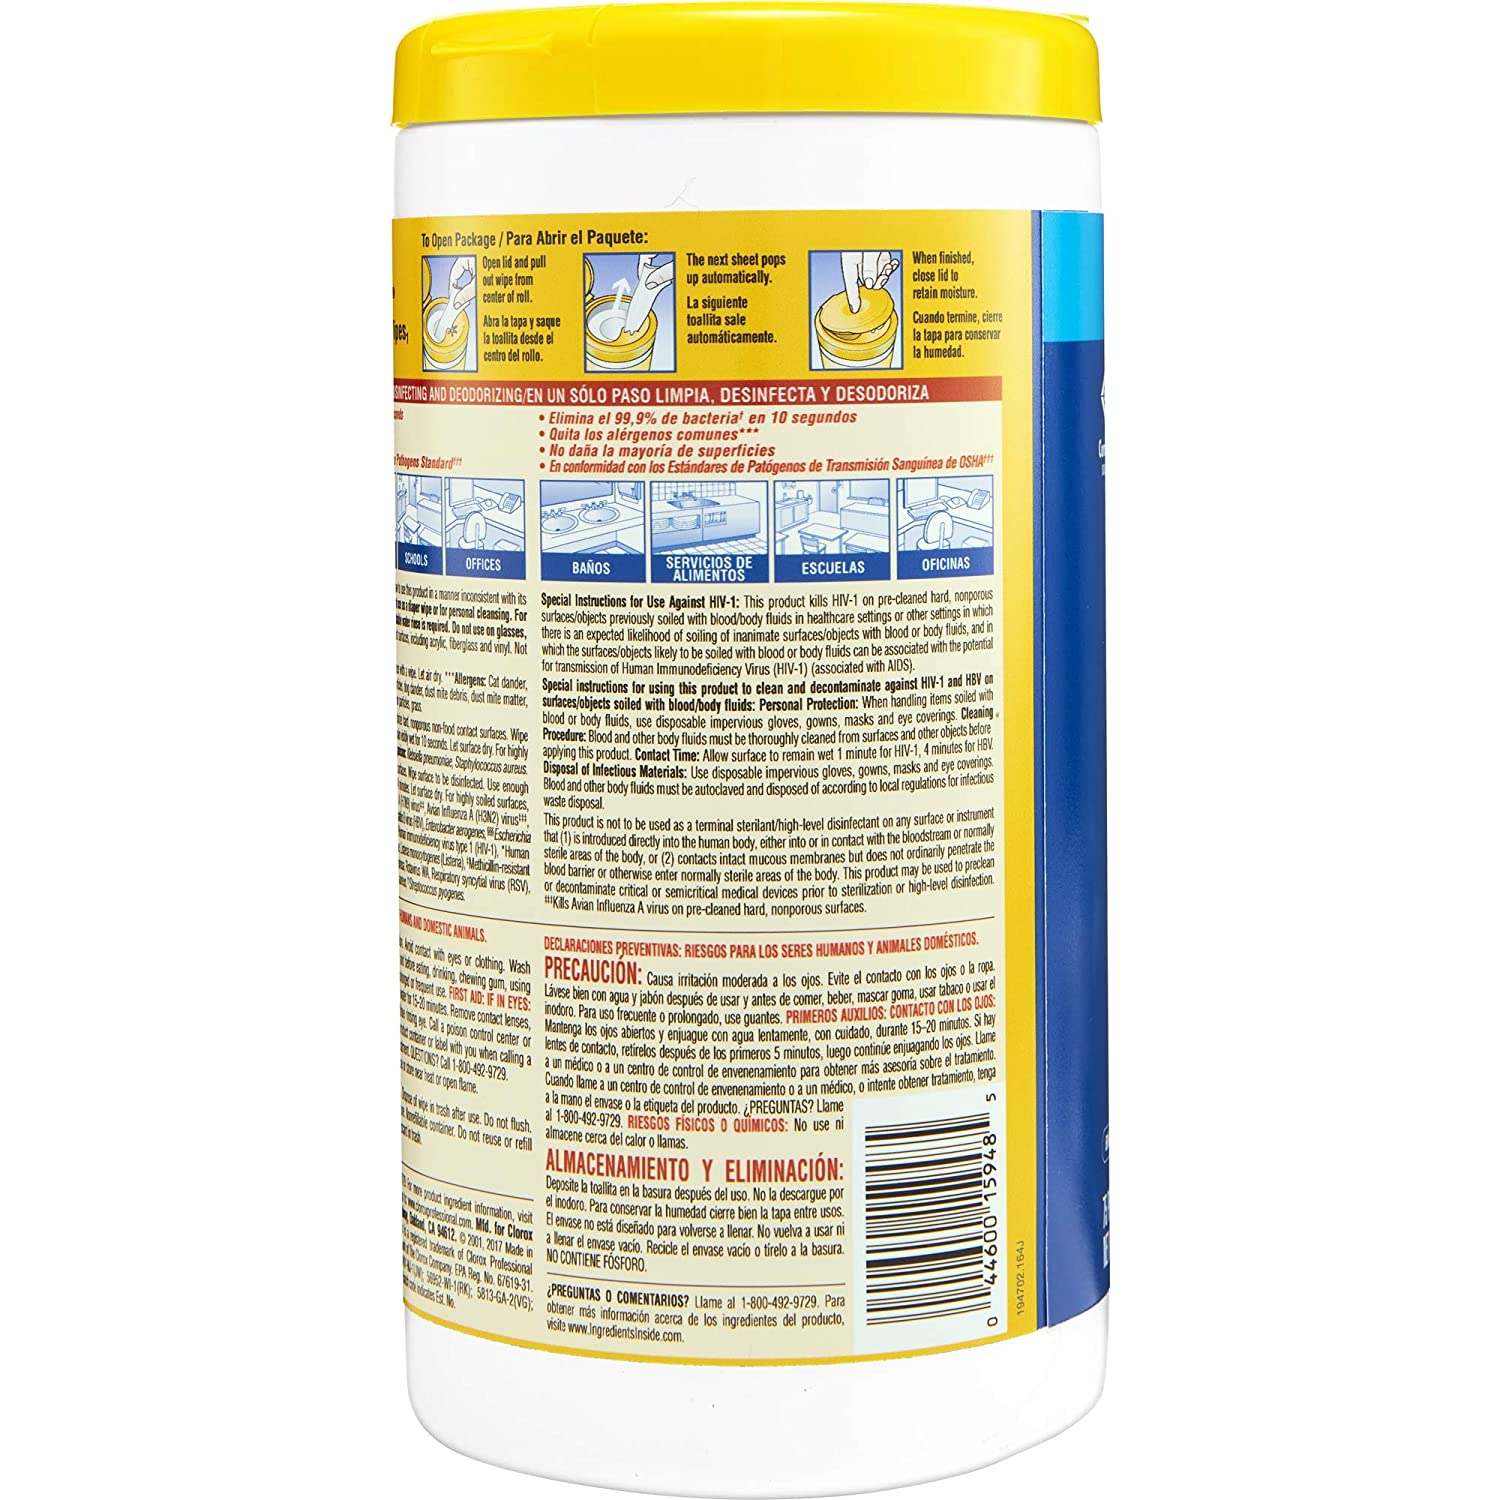 Amazon.com: Clorox Commercial Solutions Disinfecting Wipes, Lemon Fresh Scent - 75 Wipes - 6 Canisters/Case (15948): Industrial & Scientific